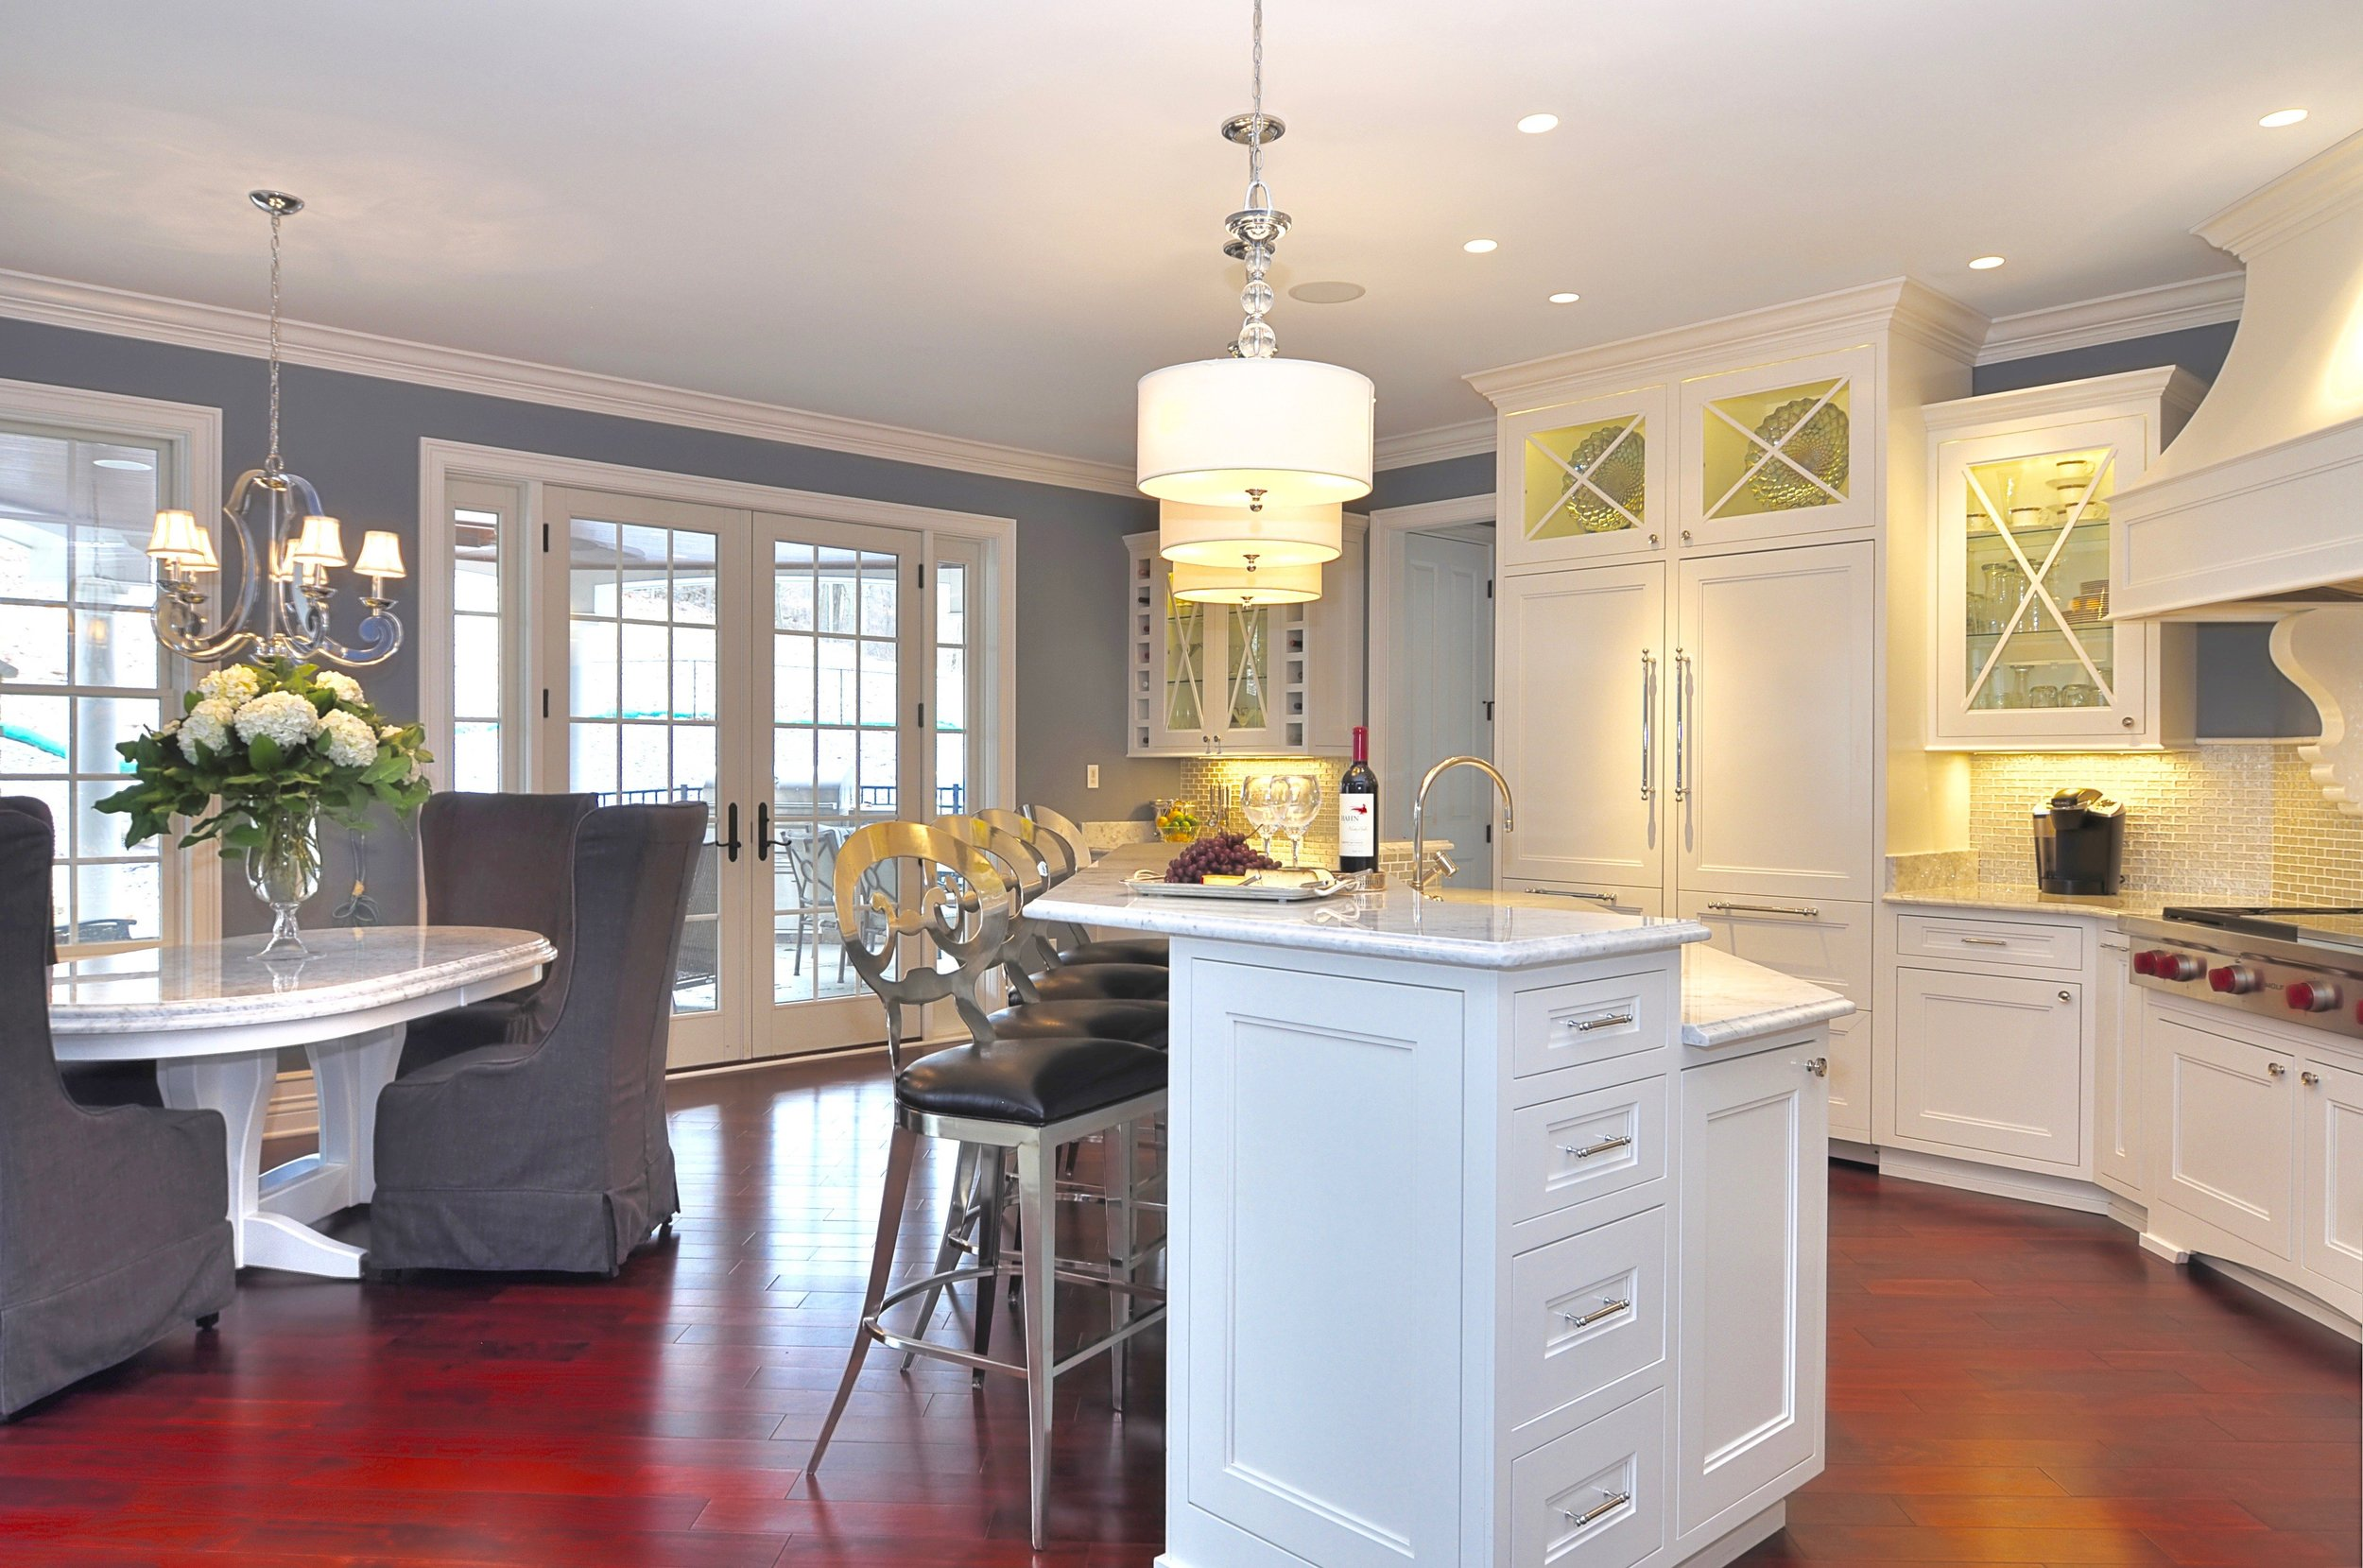 Kitchen and bath projects from the Blackwood group in PA